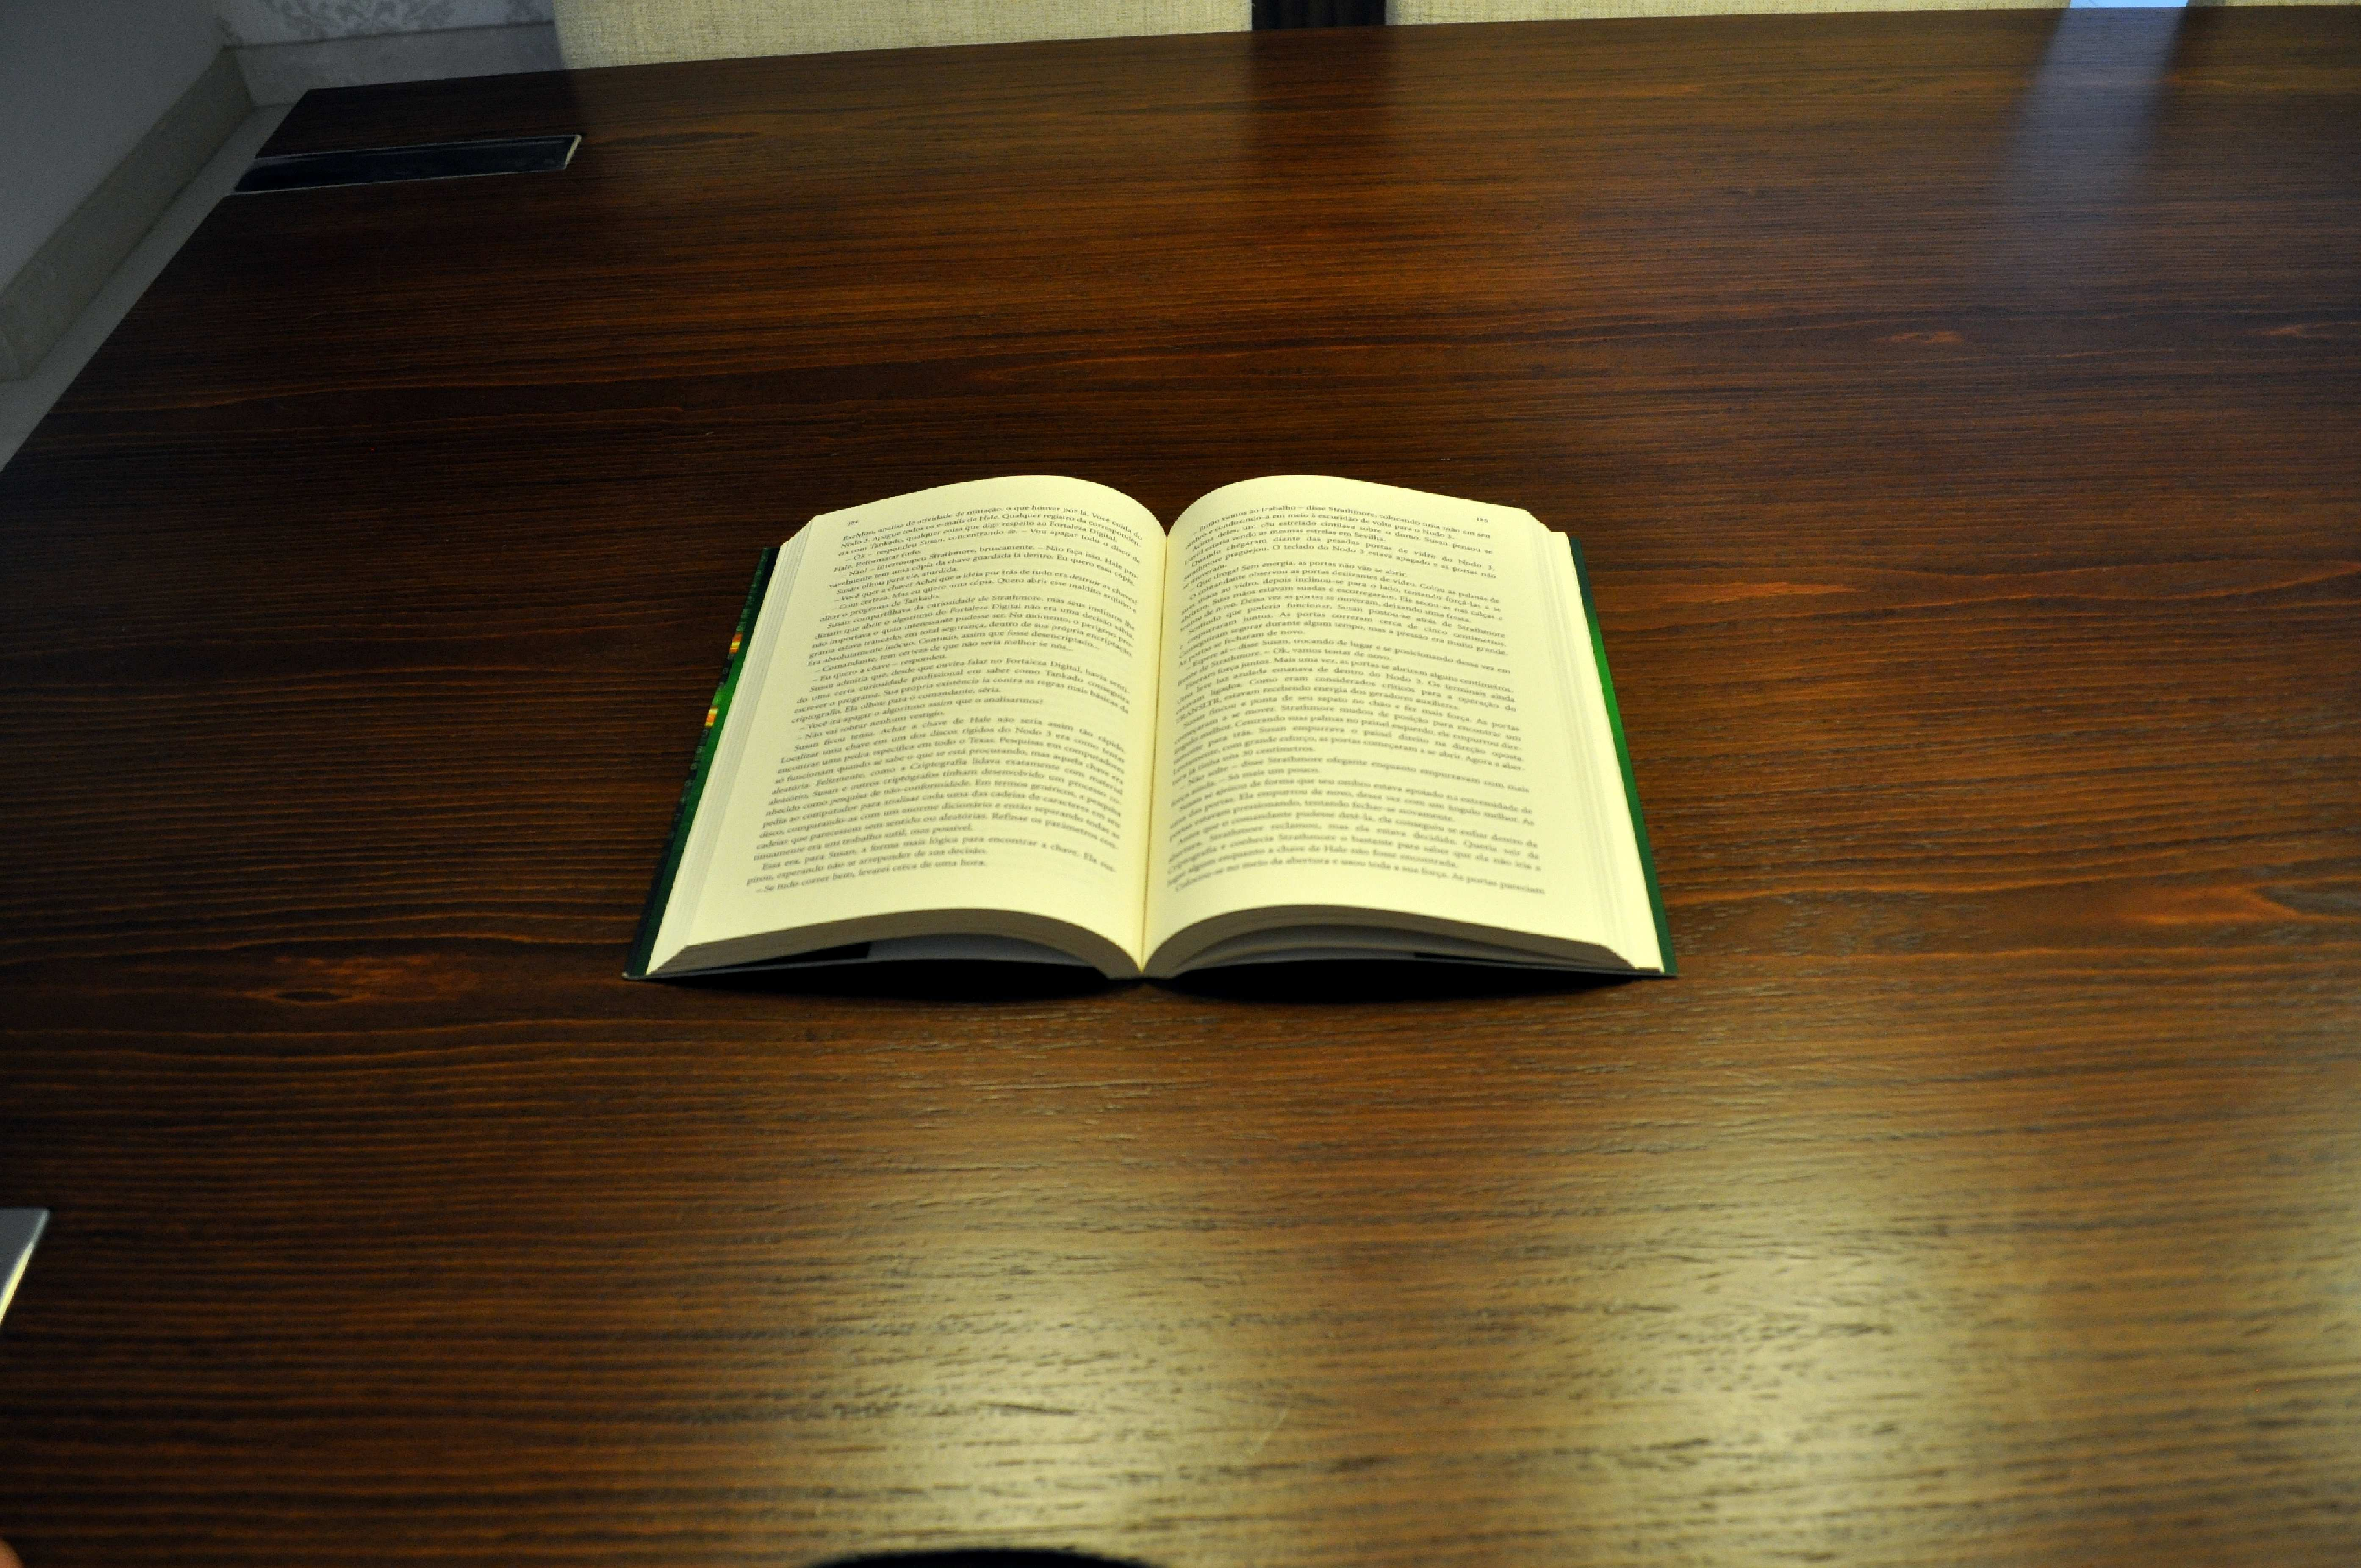 Table, Open Book, Reading